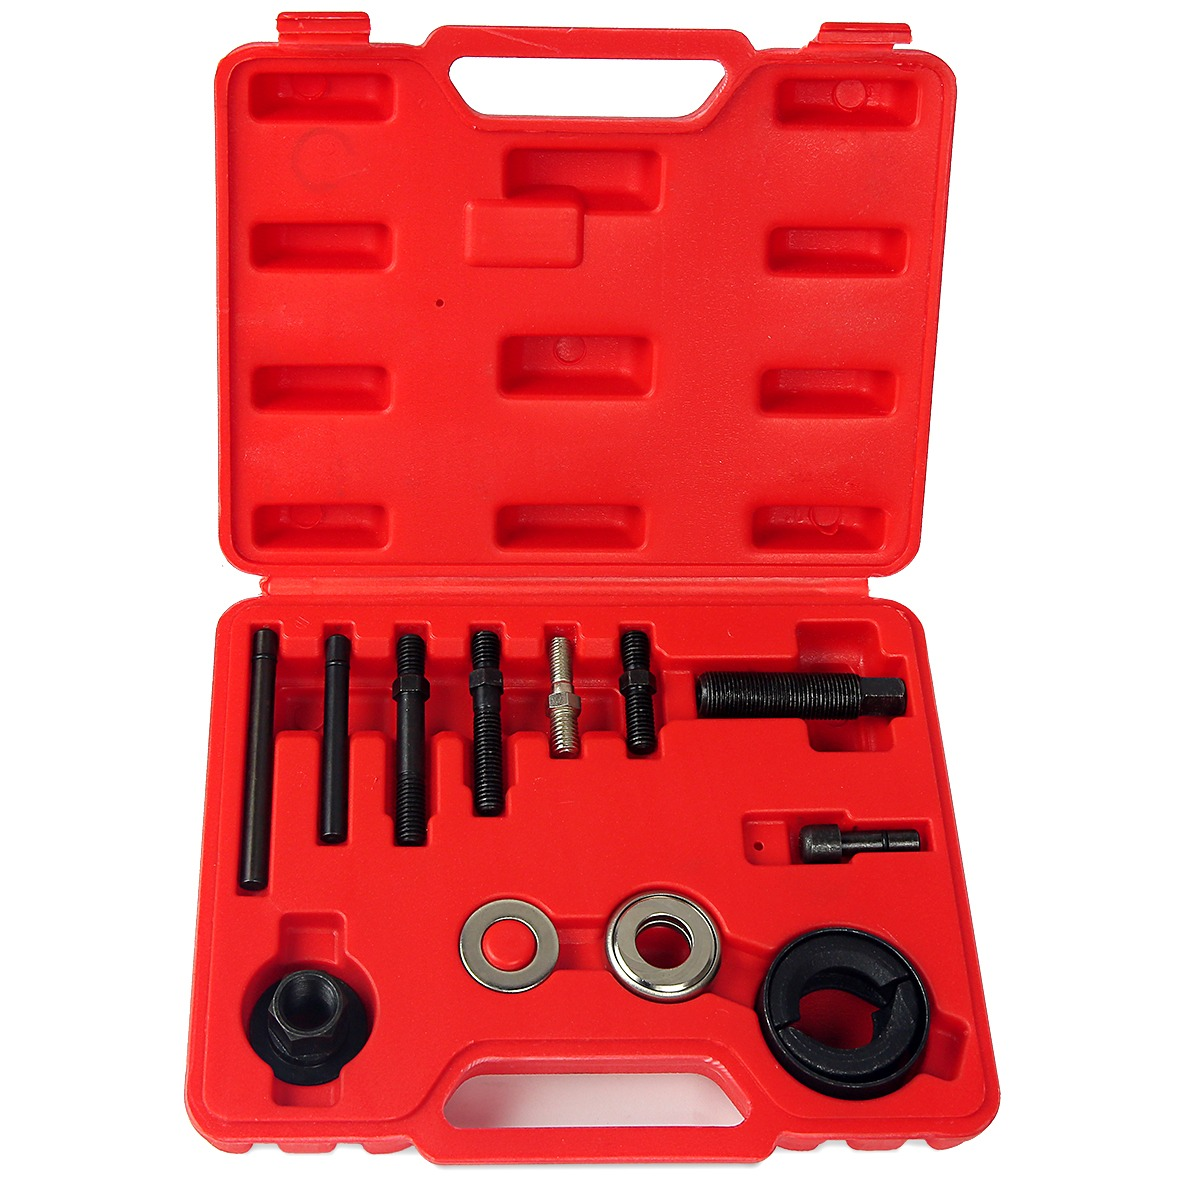 Auto Pulley Puller and Installer Set, 12pc by STKUSA